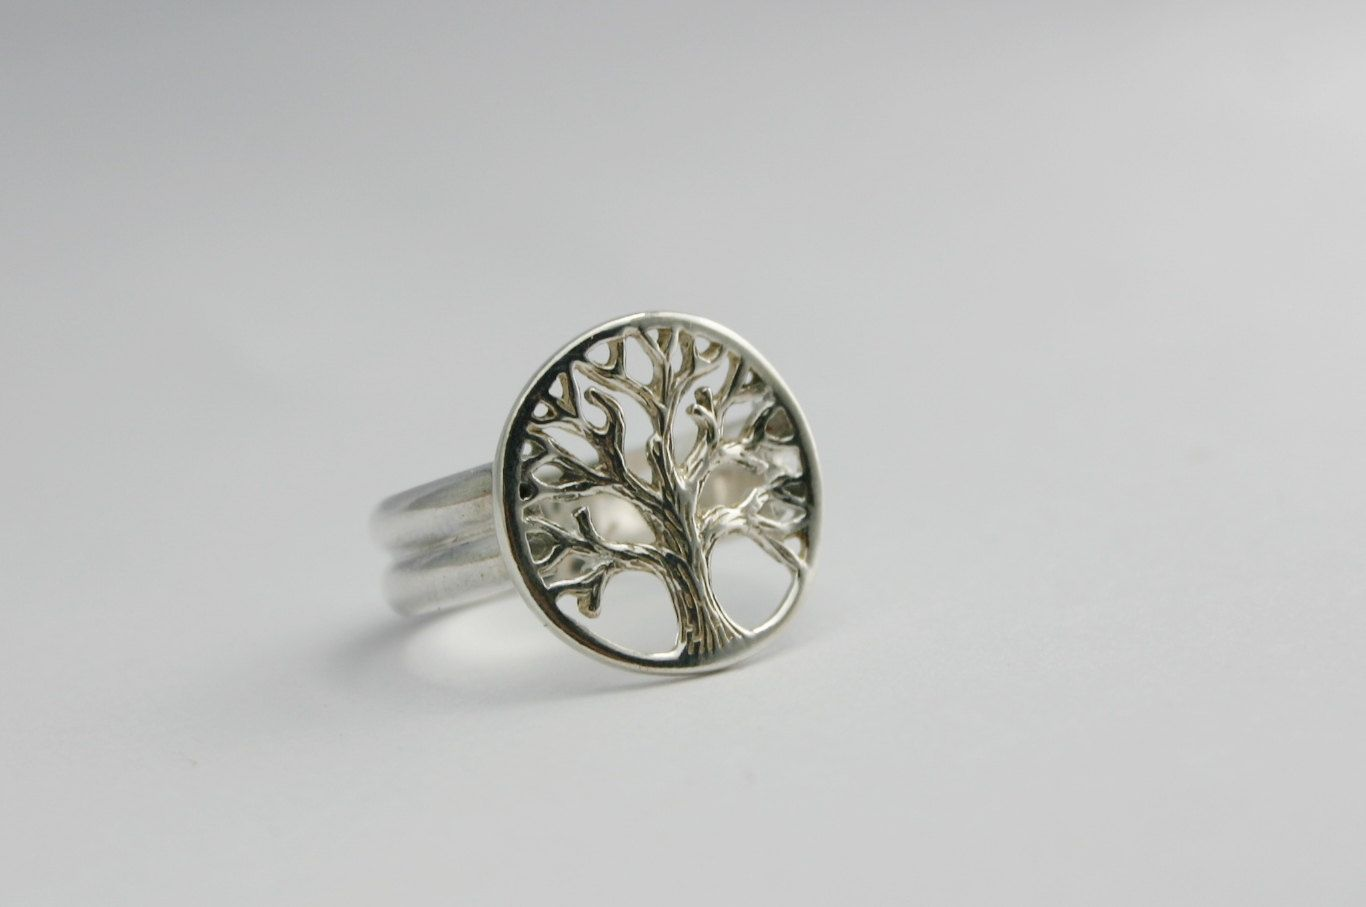 Handcrafted Sterling Silver Tree of Life Ring by LokiblueCreations on Etsy